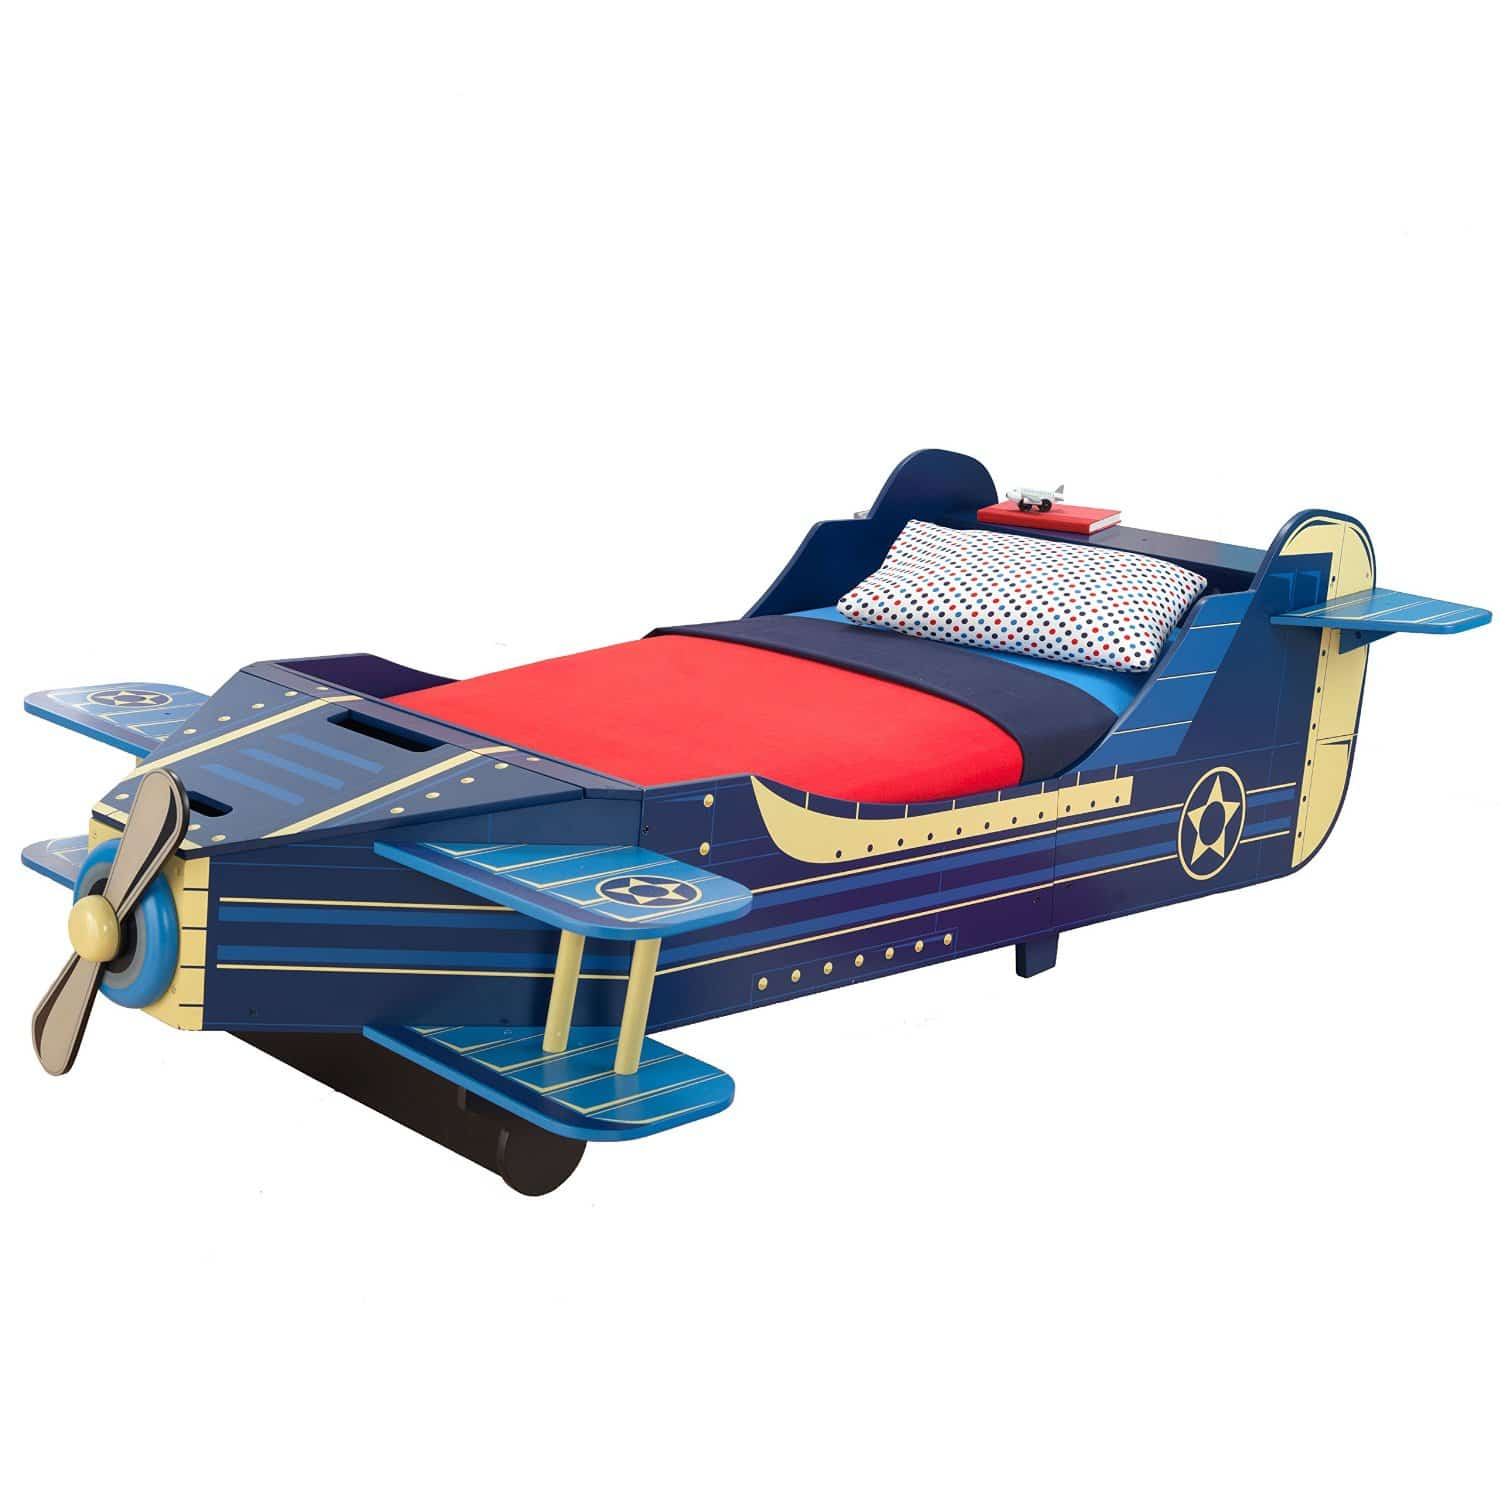 KidKraft Airplane Toddler Bed Review